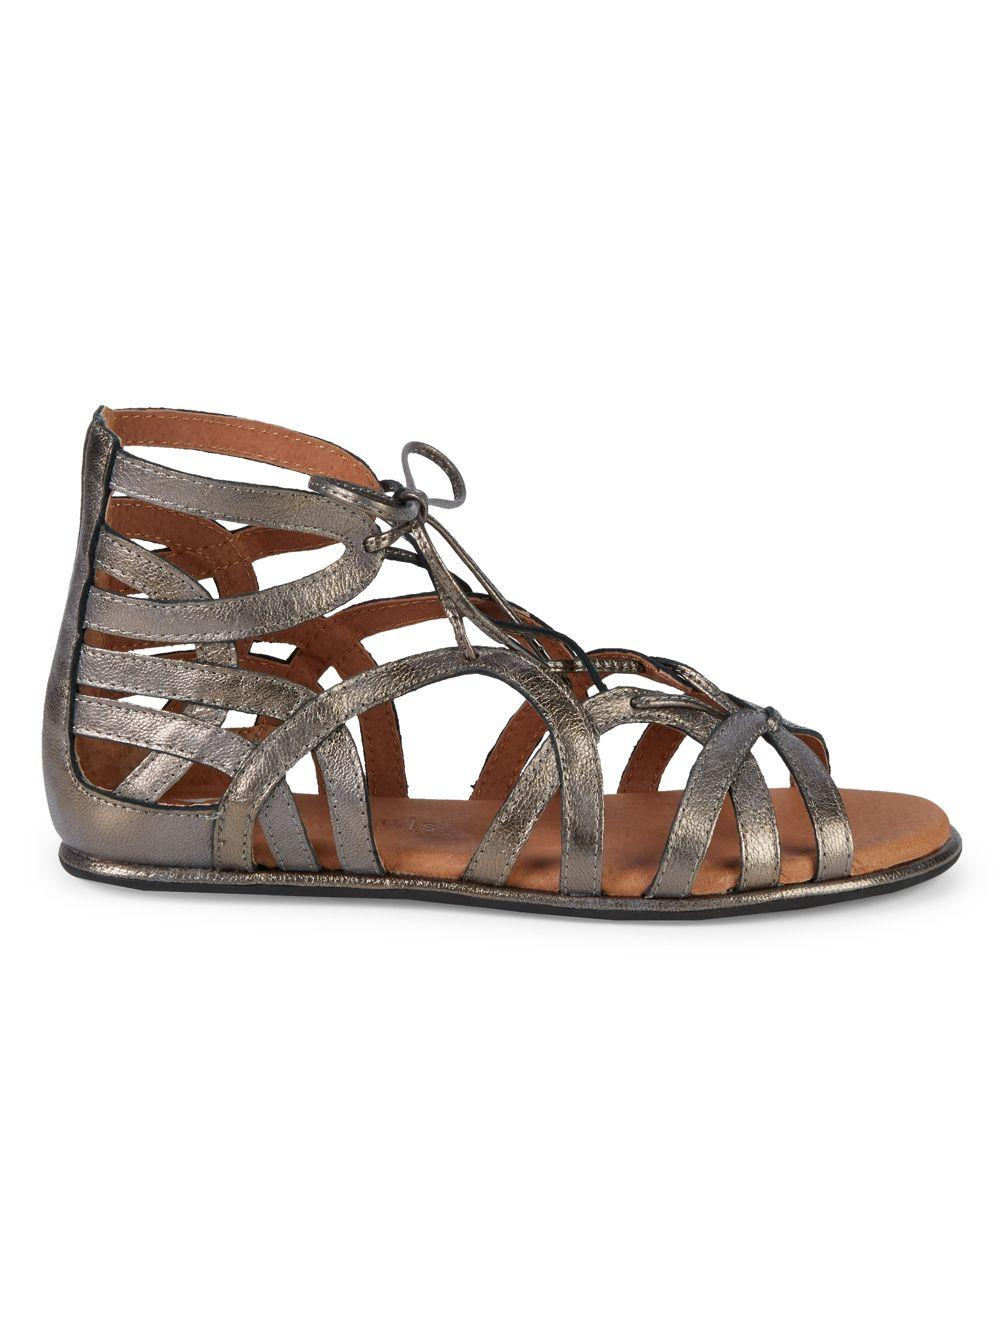 54e44f5b6594 Lyst - Gentle Souls Leather Ghillie D orsay Flat Sandals in Brown